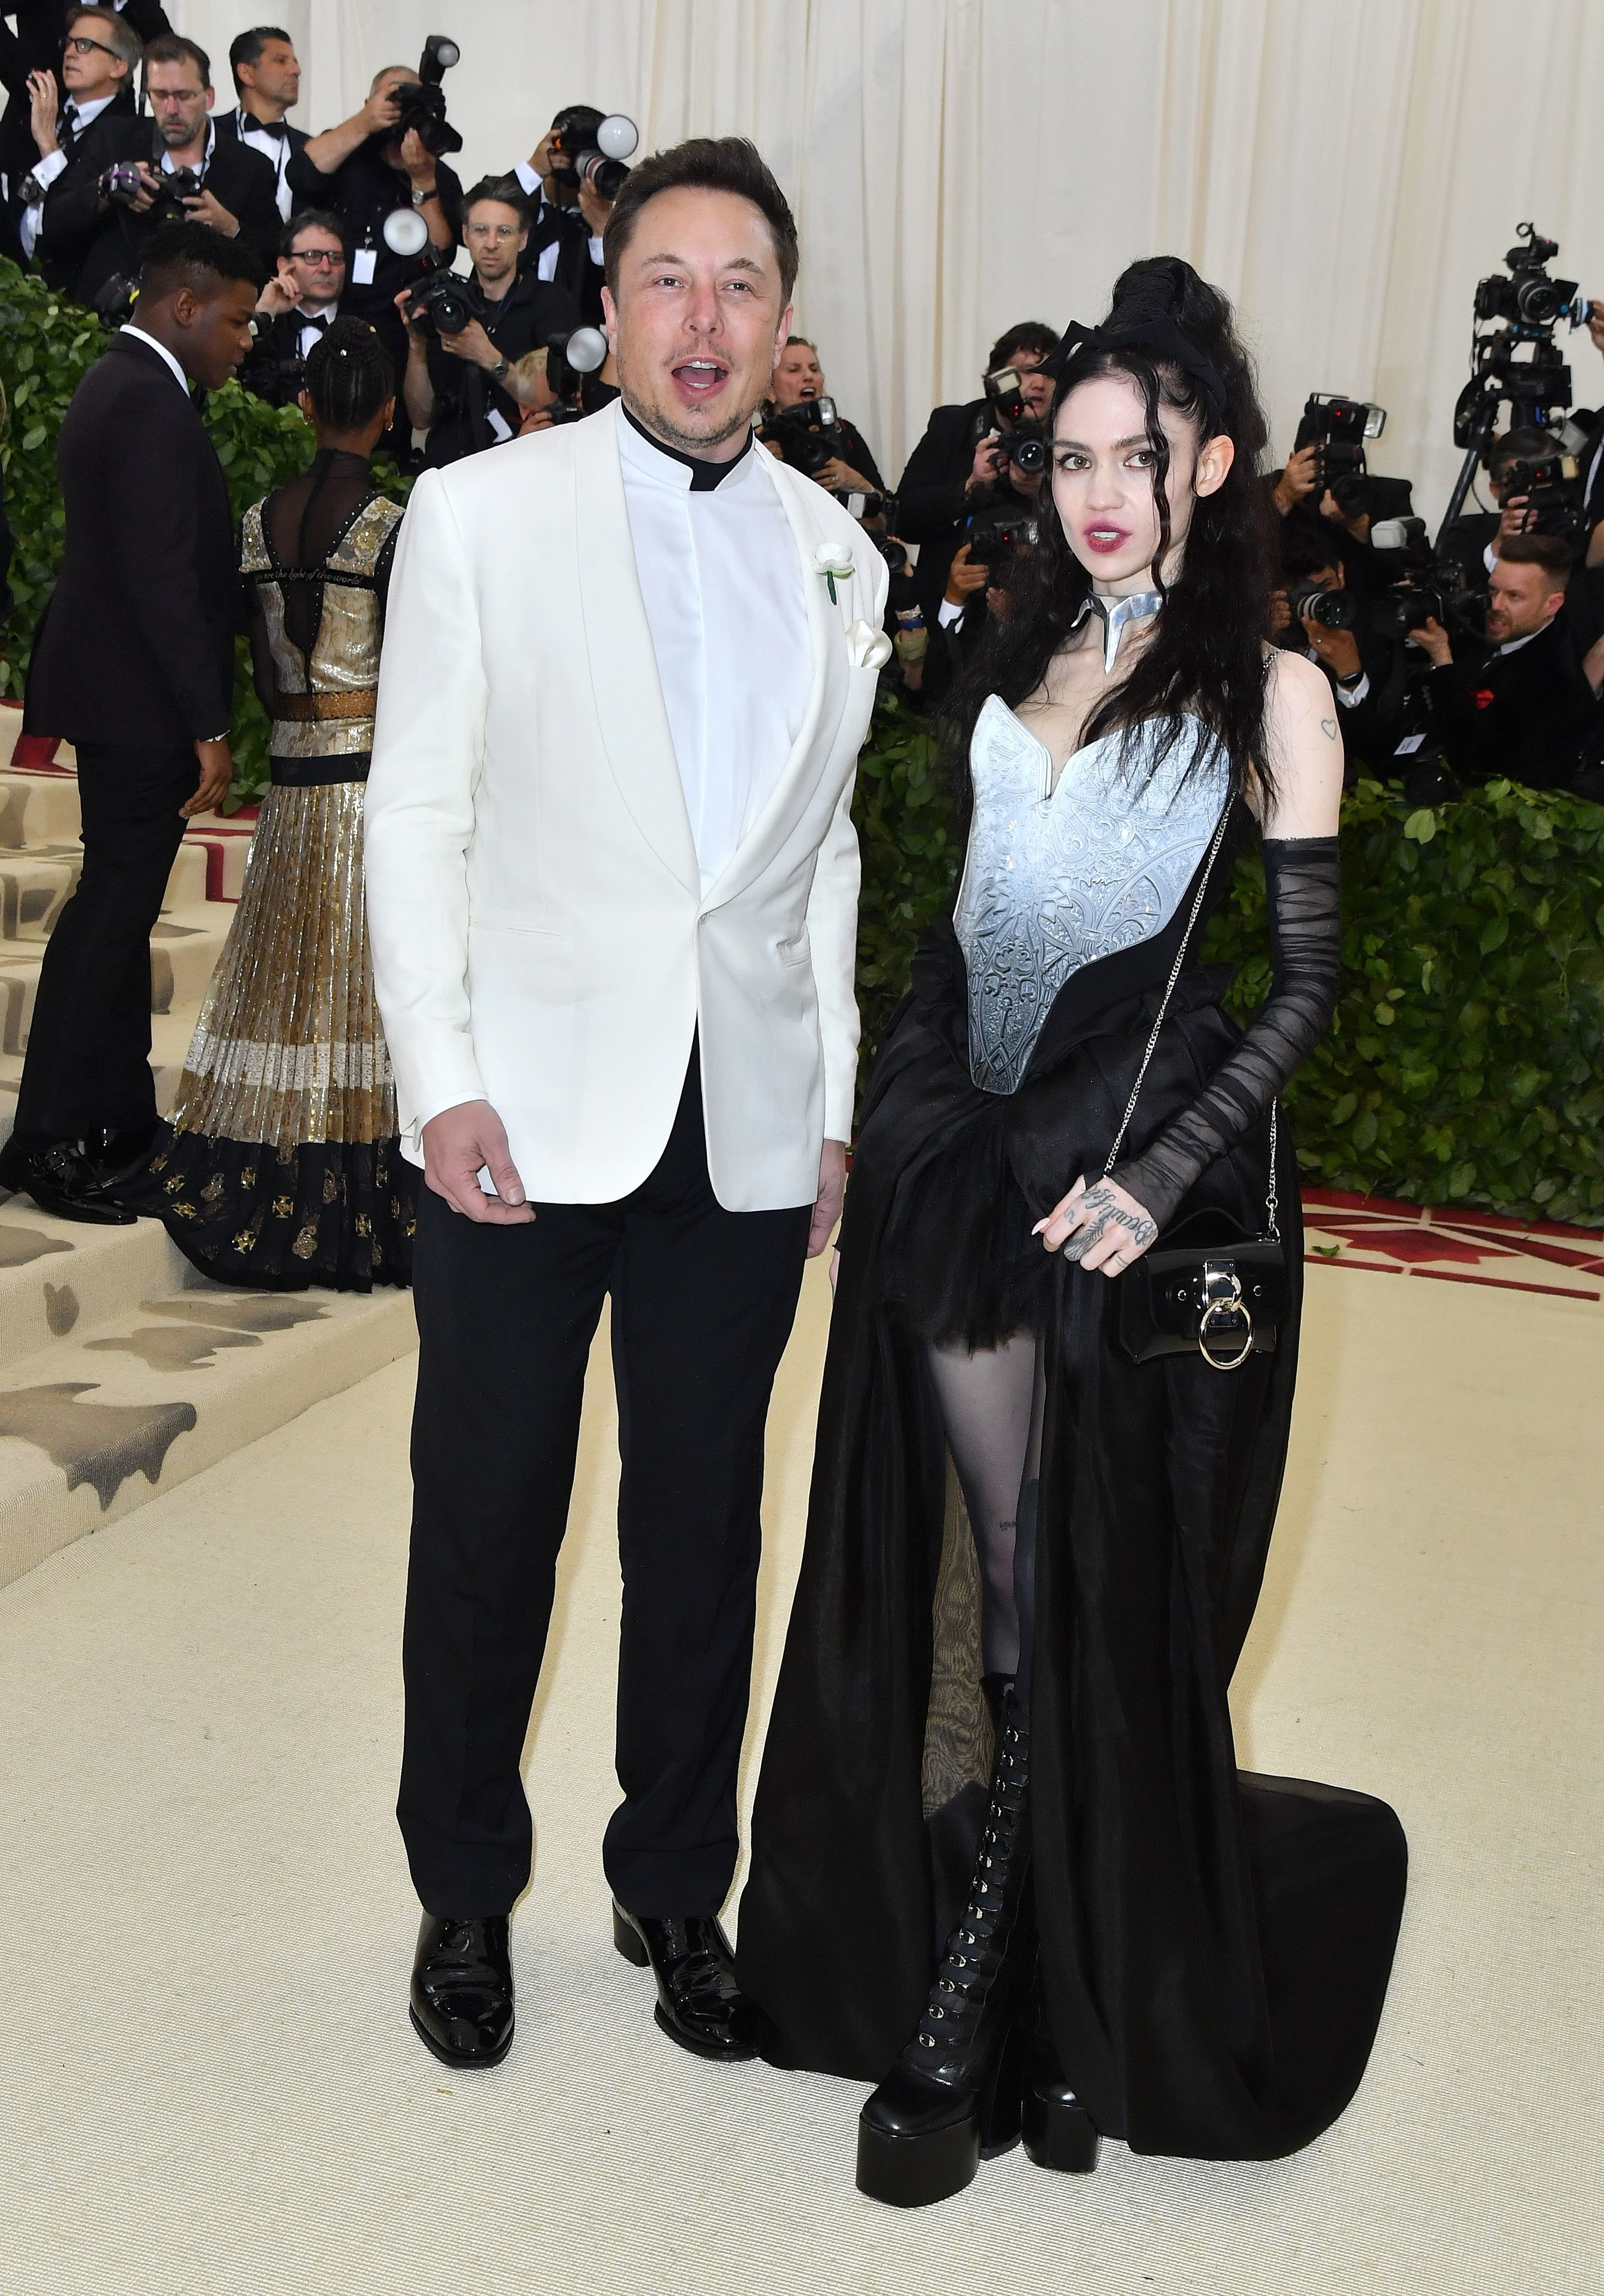 Grimes and Elon Musk on a red carpet